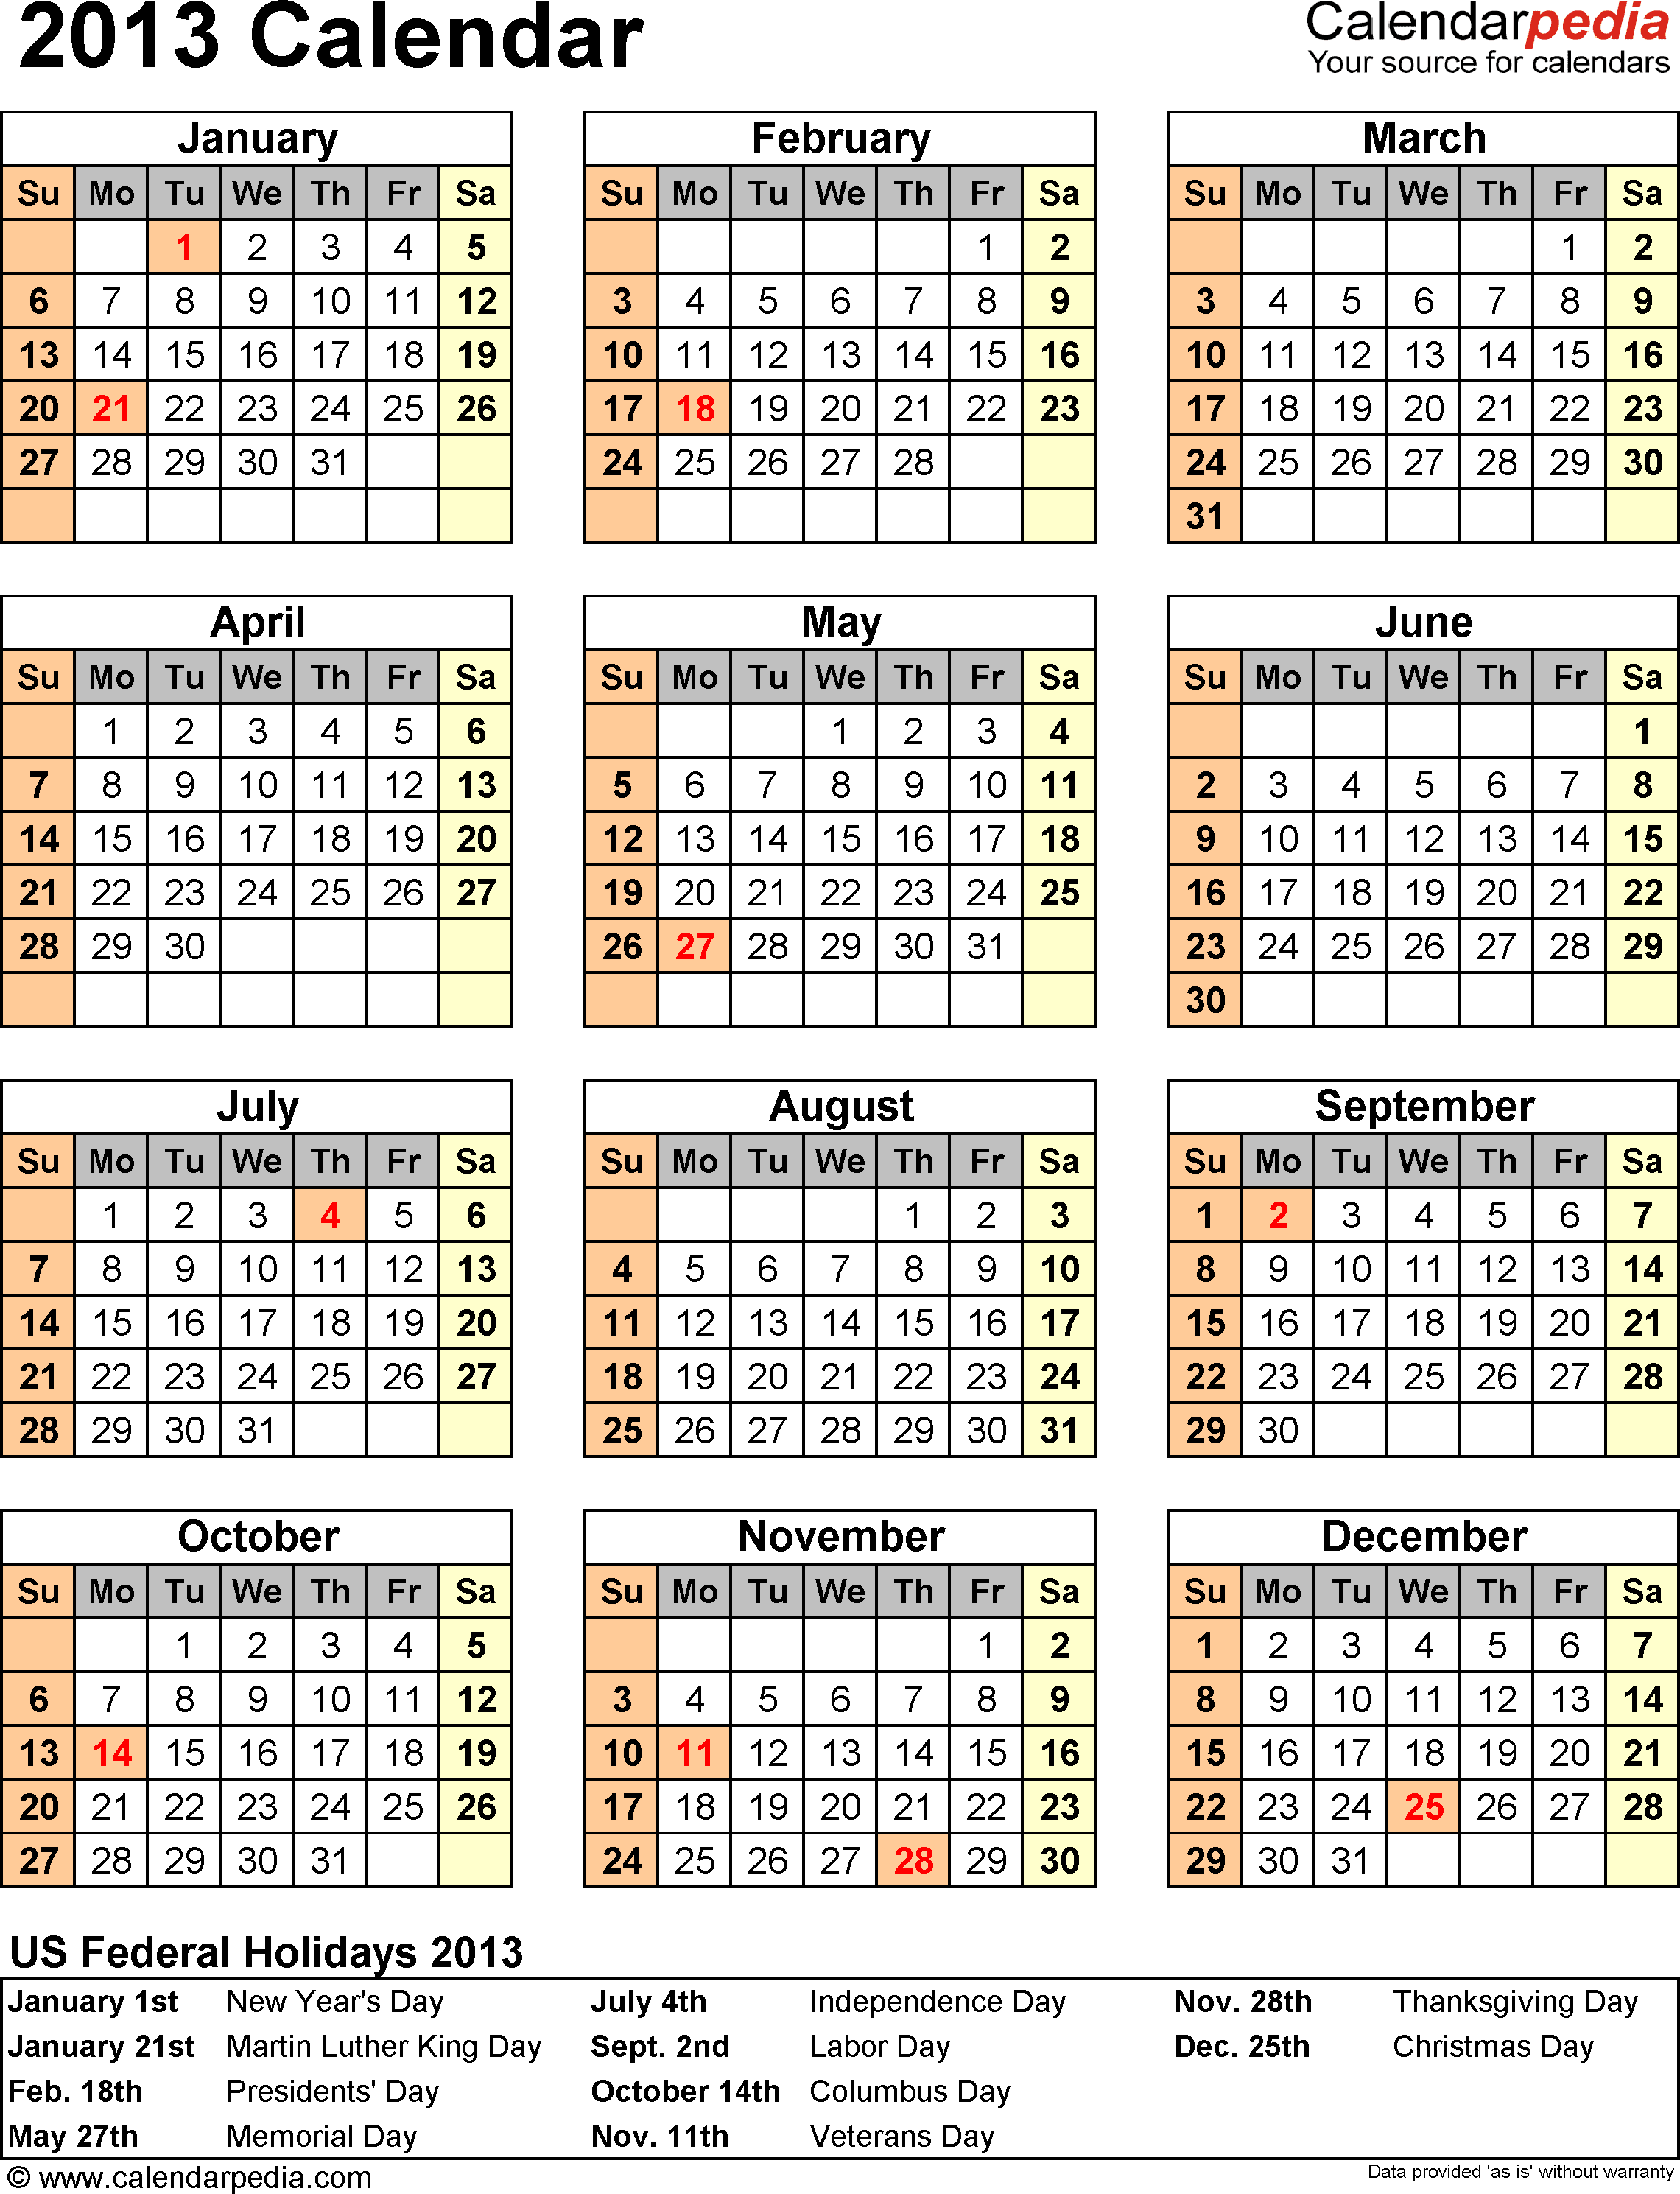 Download Excel Template For 2013 Calendar Template 11: Portrait  Orientation, 1 Page